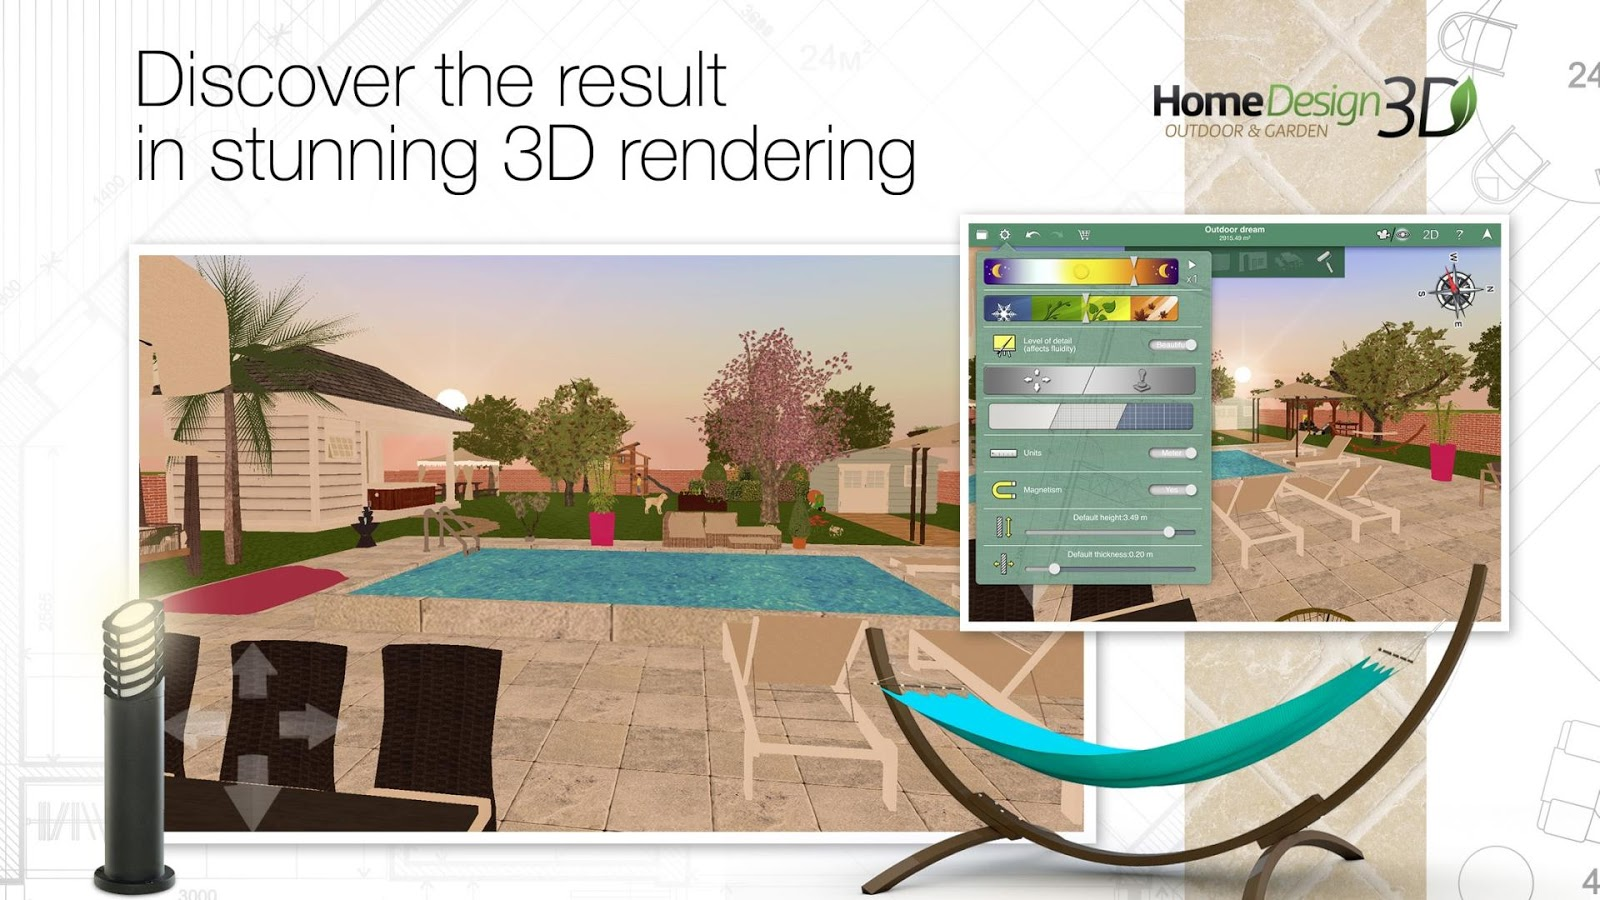 Home design 3d outdoor garden slides into the play store for all your deck pool and open air planning needs